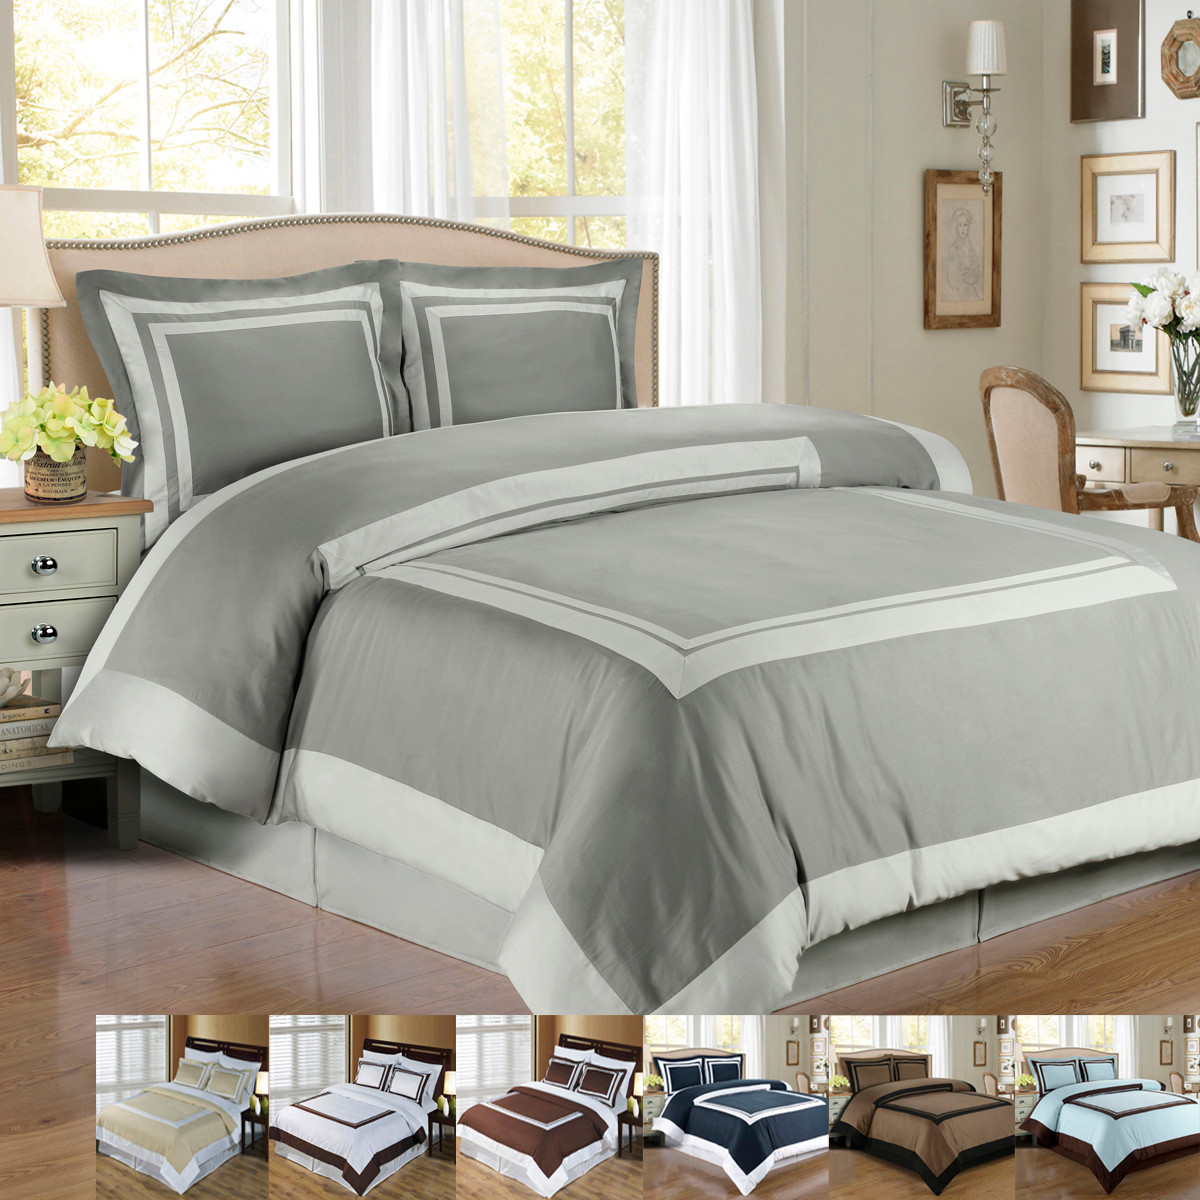 Wrinkle Free Combed Cotton Hotel Duvet Cover Set